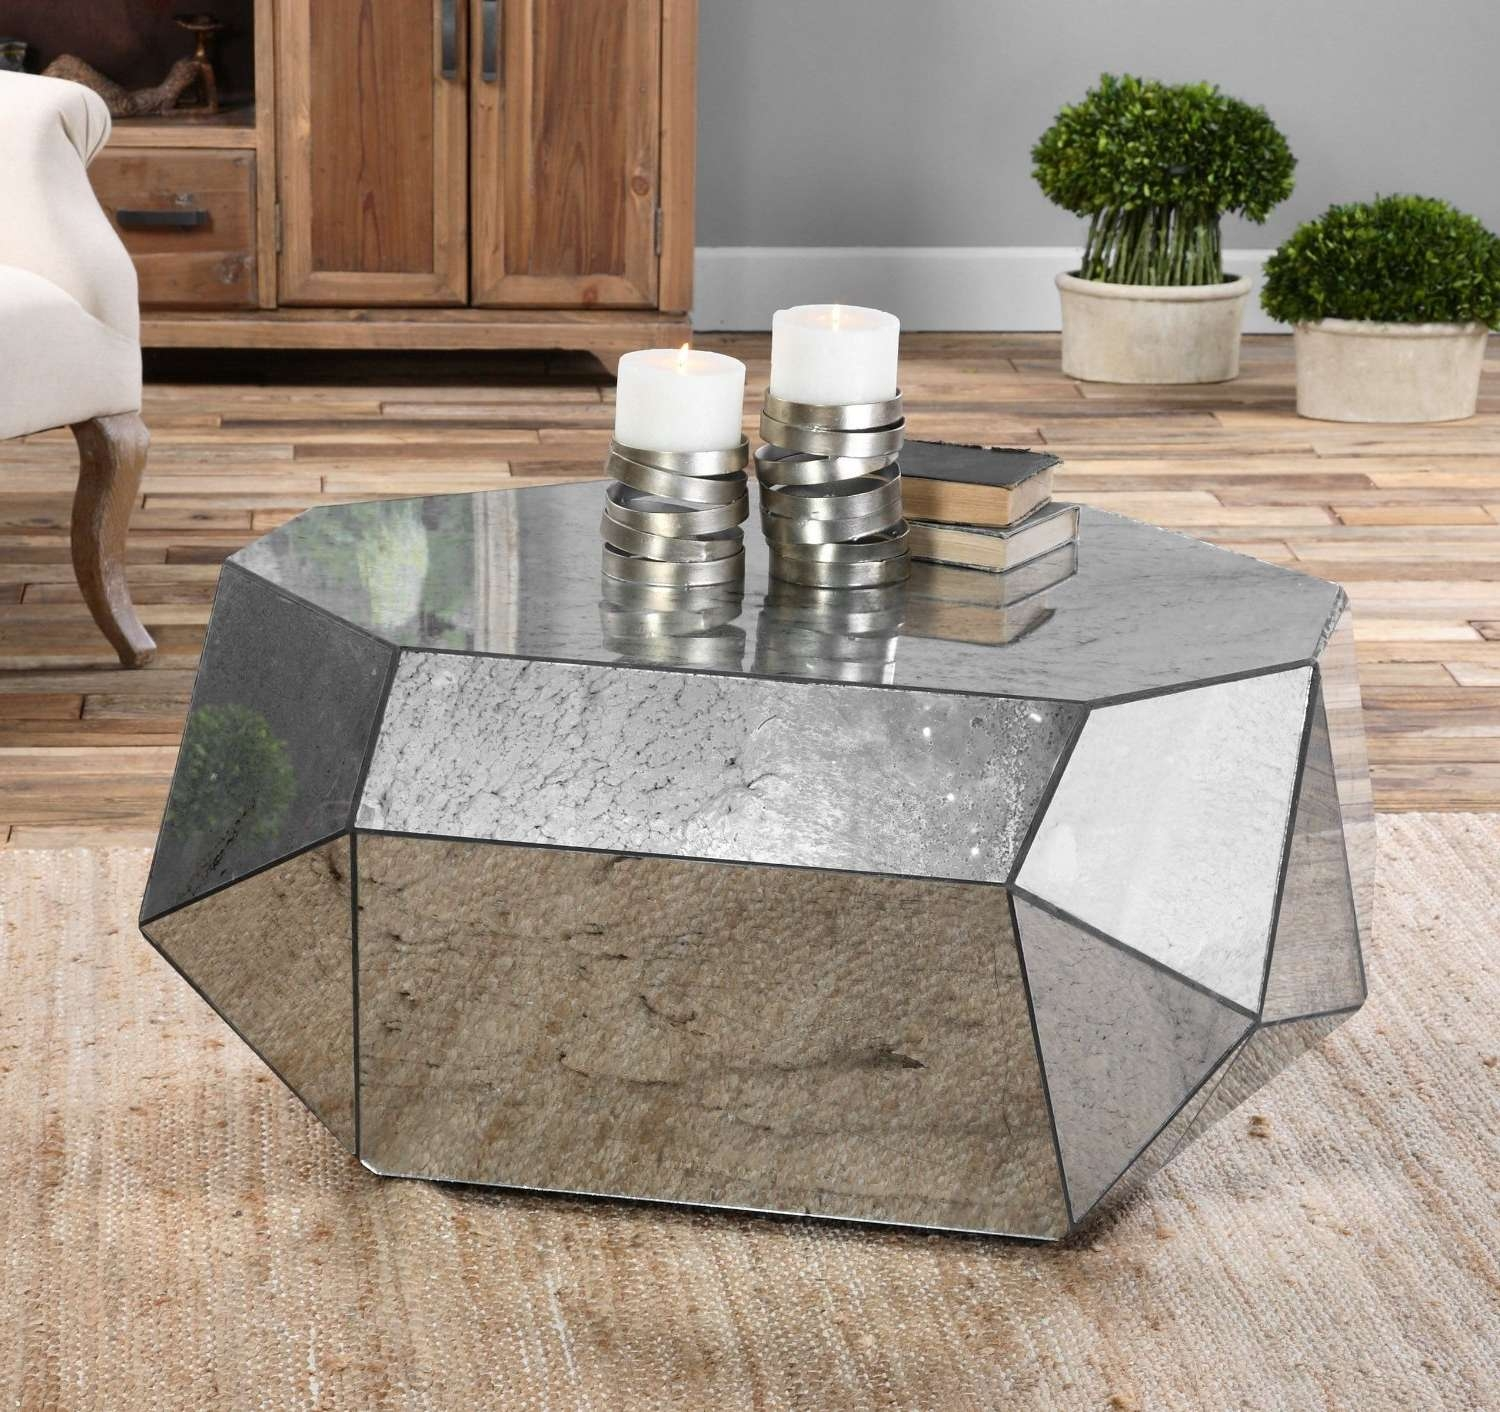 Preferred Antique Mirrored Coffee Tables Pertaining To Coffee Tables : Dazzling Table Antique Mirror Glass Coffee Table (View 18 of 20)